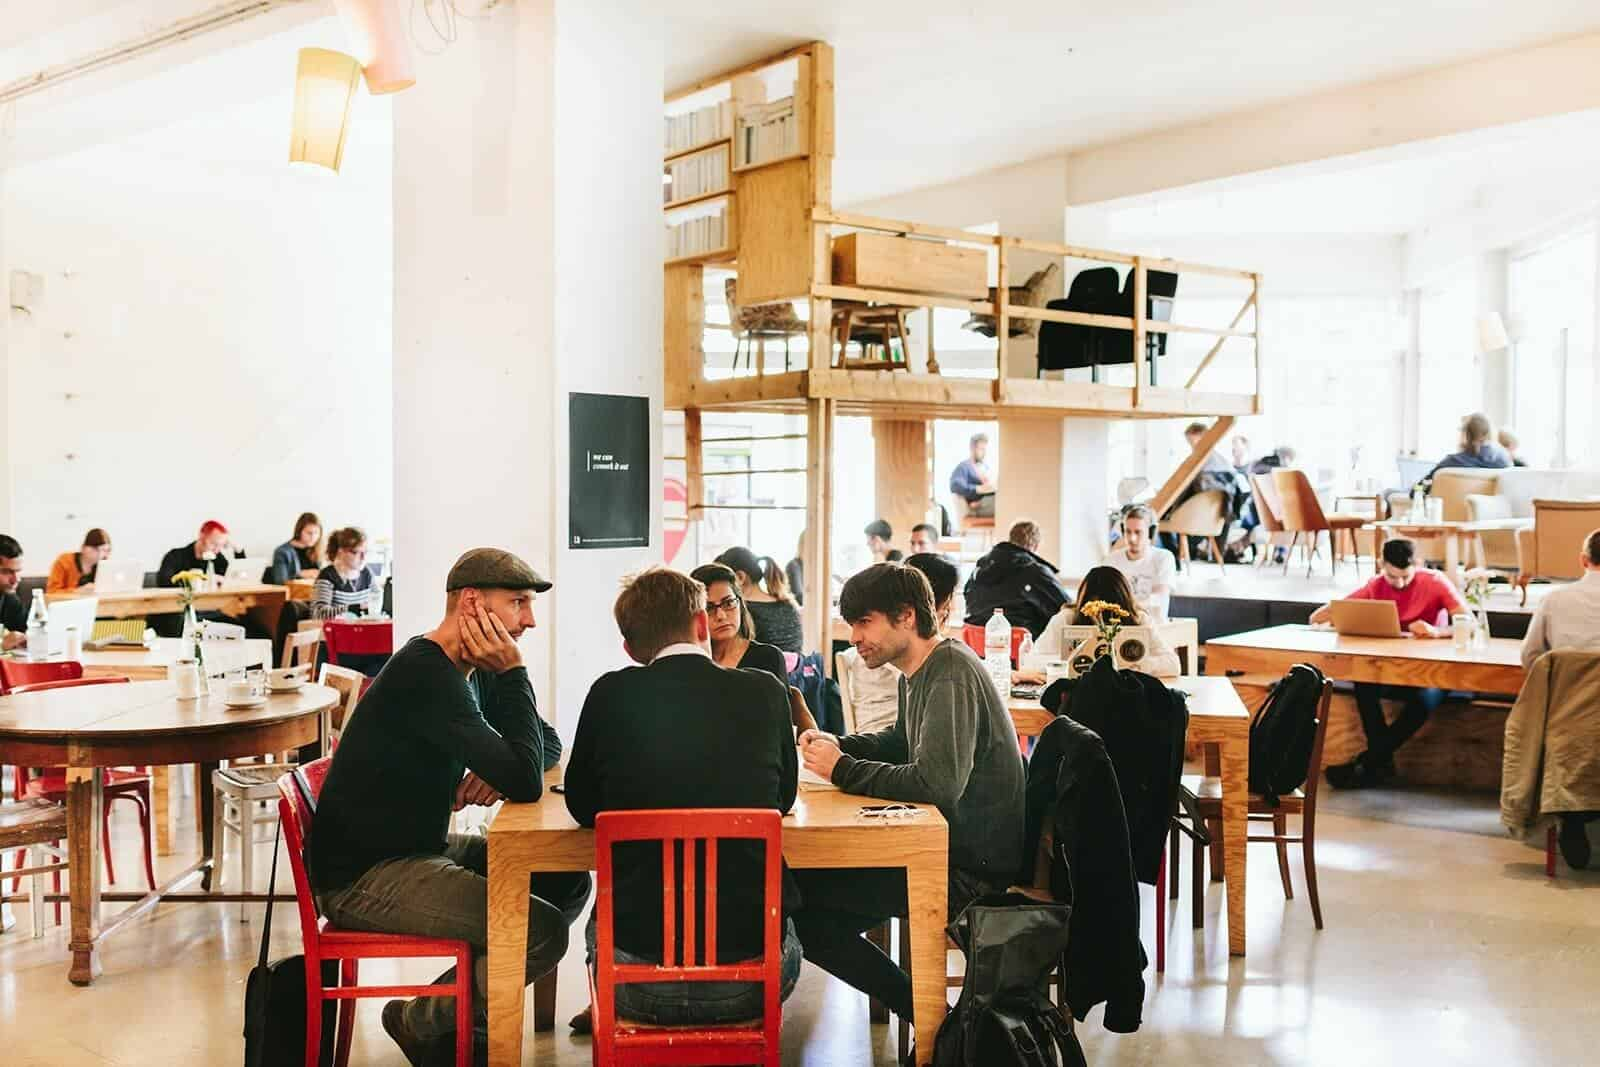 Benefits of Coworking: Behaus Berlin coworking Coworking: The New Way to Work benefits of coworking betahaus berlin